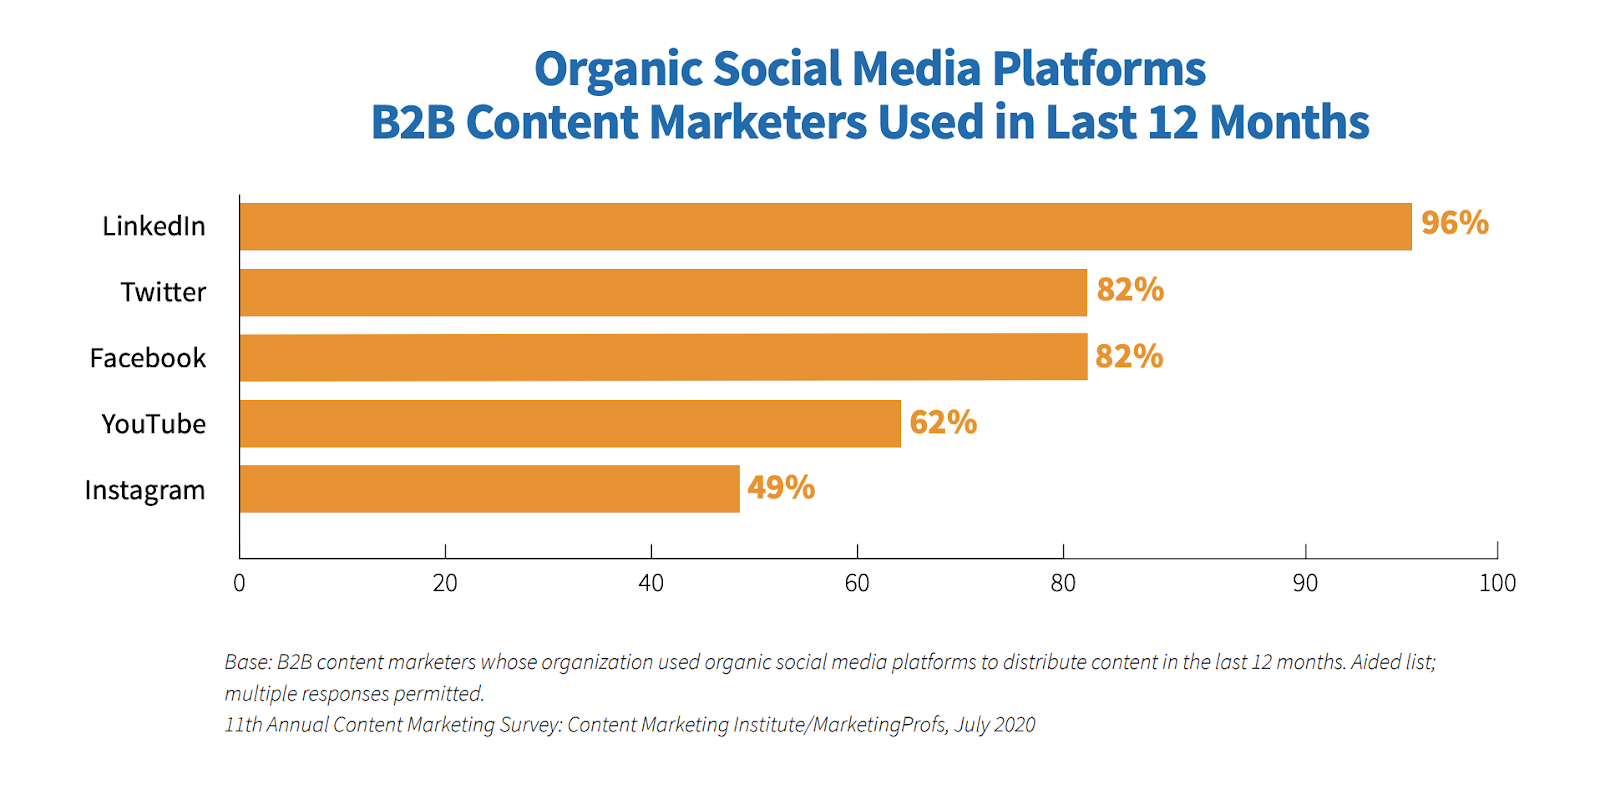 Organic social media platforms B2B content marketers used in Last 12 months